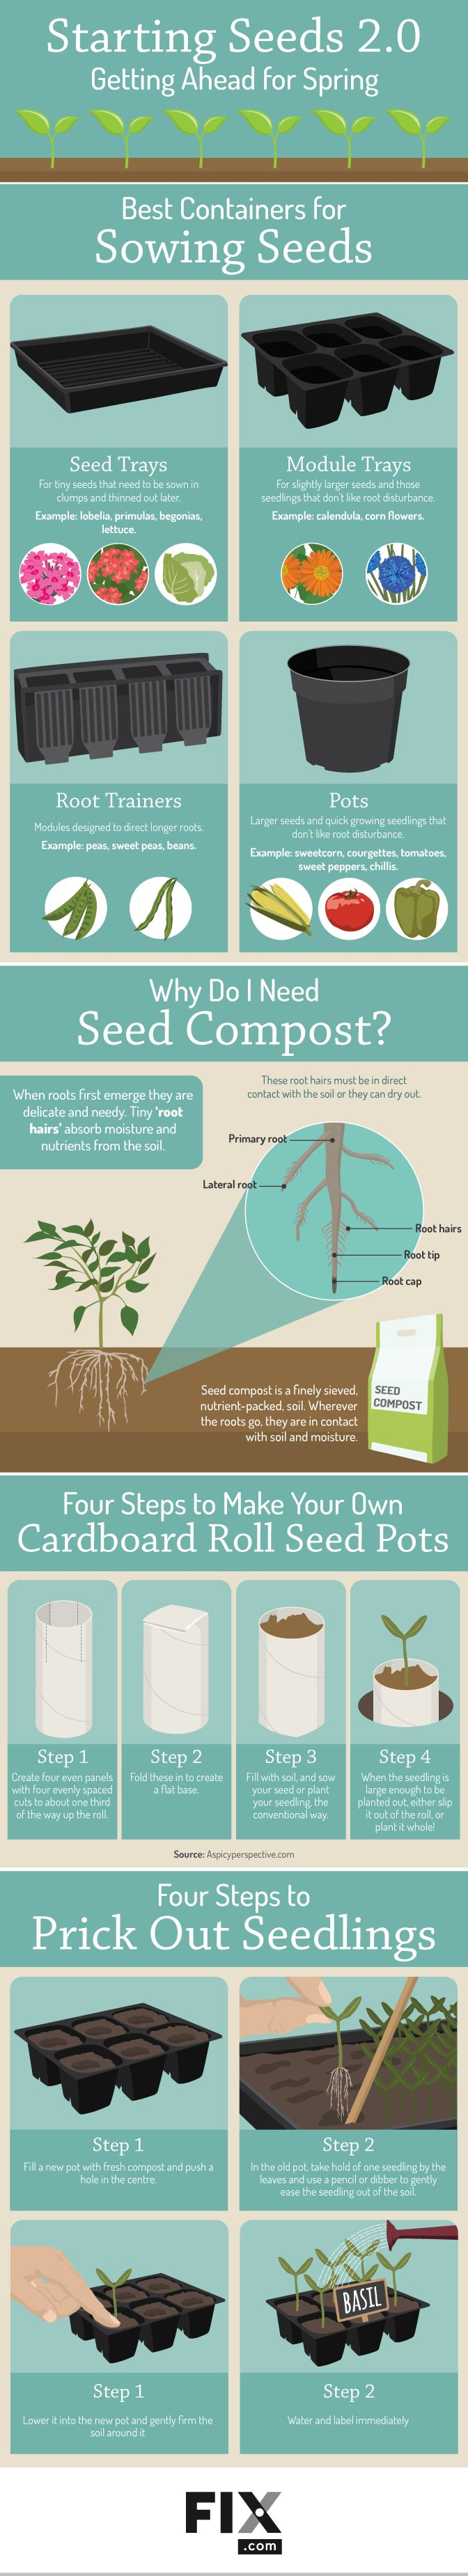 It all starts with the seed. Watching it germinate, watching it grow, and watching that plant become a wonderful harvest. Gardening is amazing! Here's a rough guideline of when to start your seeds either by direct seeding or by growing your own transplants. It's always good to double check your